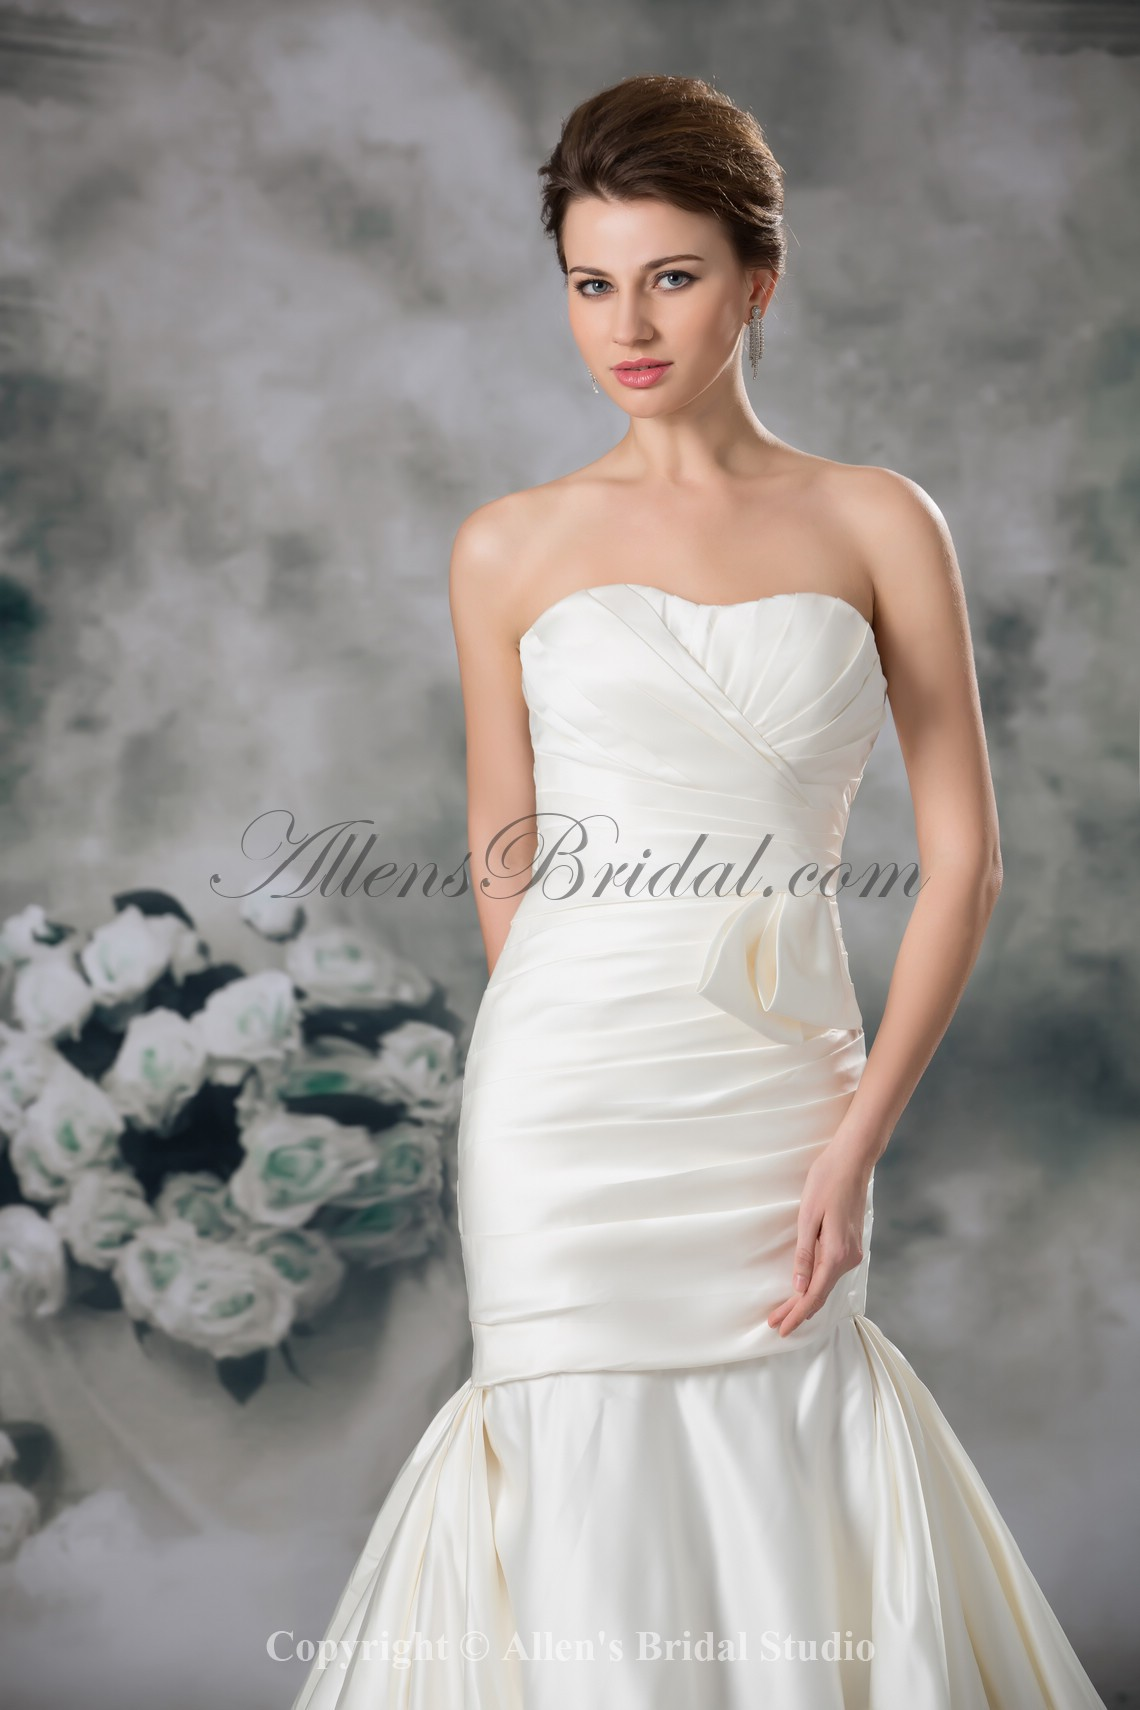 /976-7822/satin-sweetheart-chapel-train-mermaid-ruffle-wedding-dress.jpg